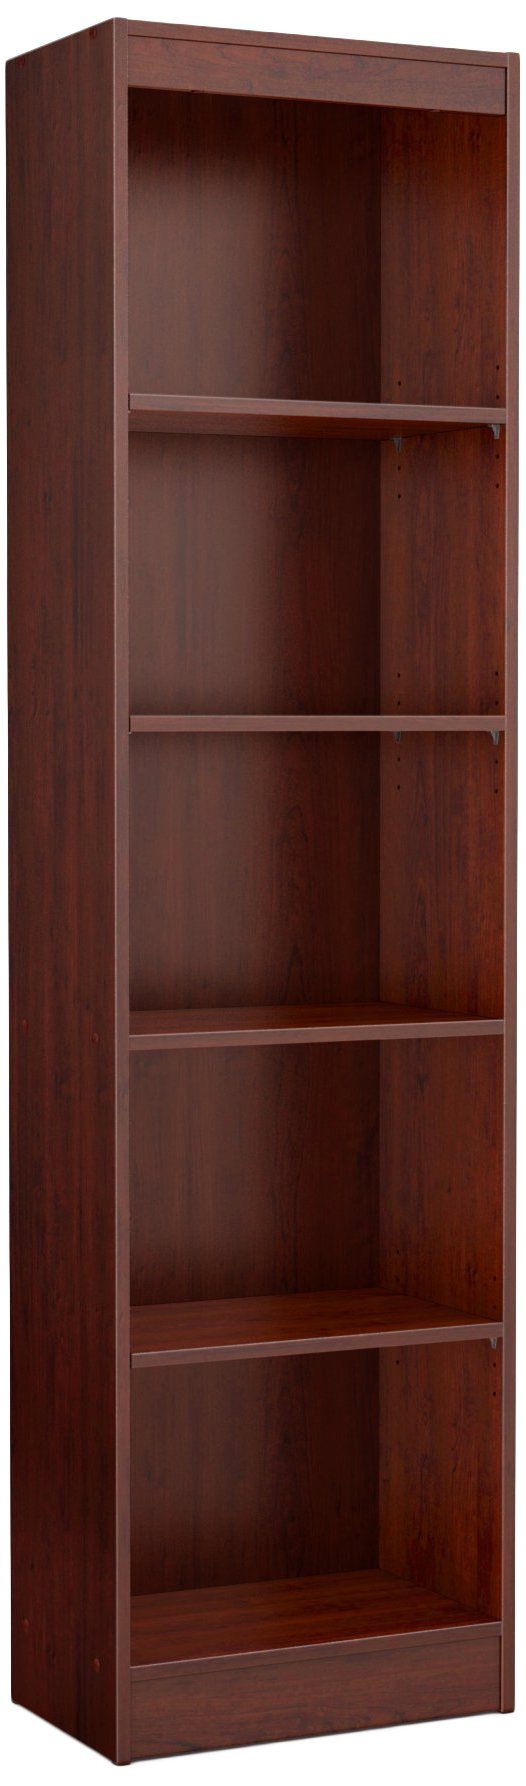 South Shore Narrow 5-Shelf Storage Bookcase, Royal Cherry by South Shore